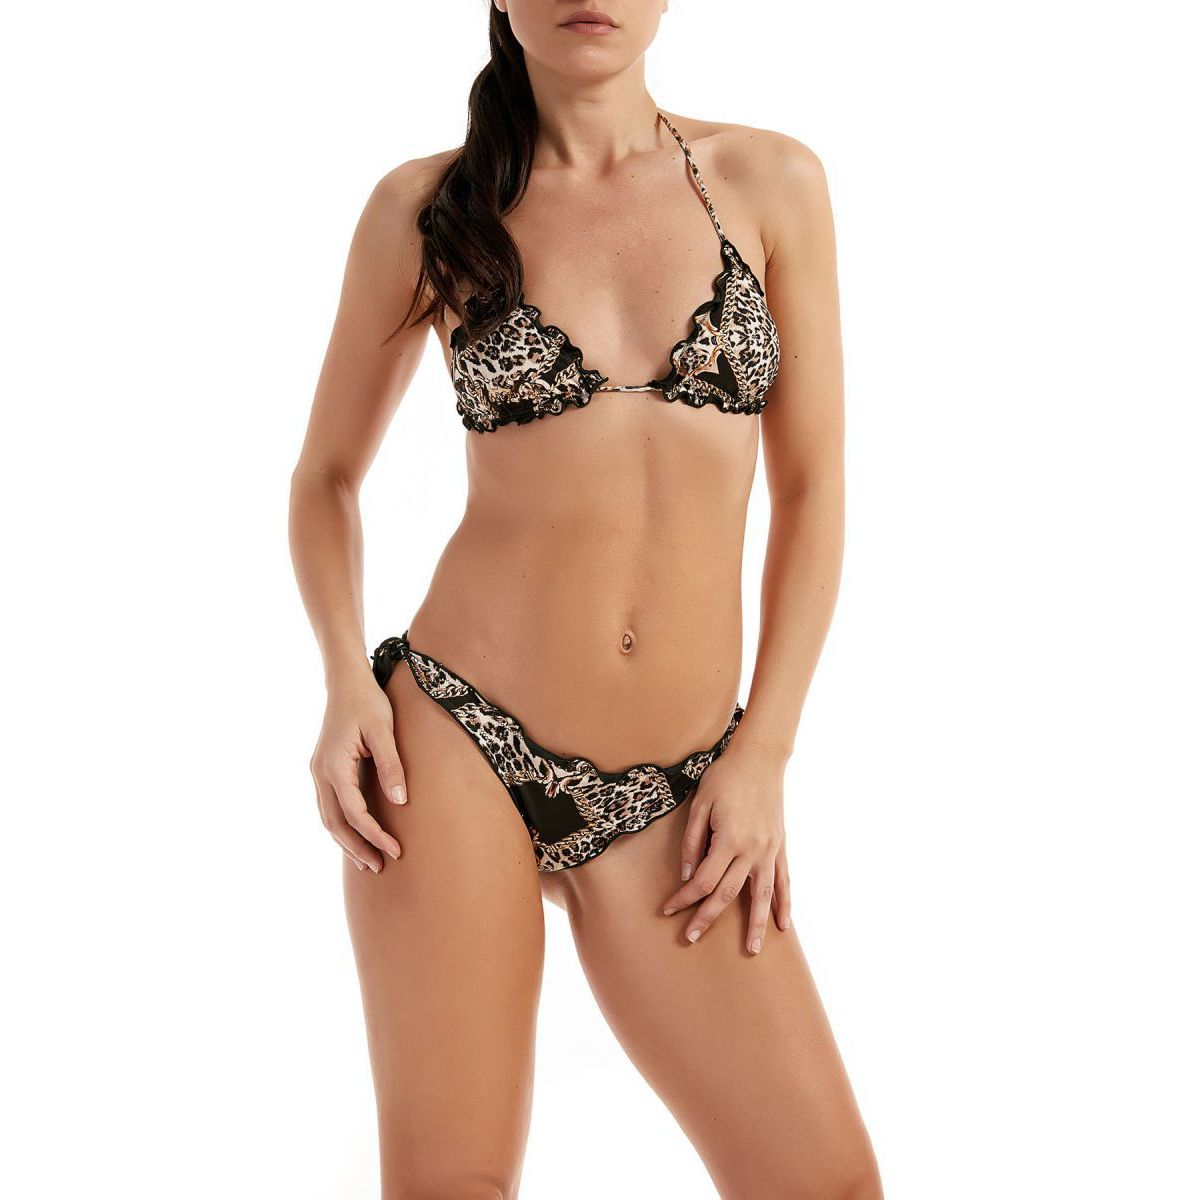 Triangle frou frou stretch bikini and The Villa knot briefs Black / beige F**K